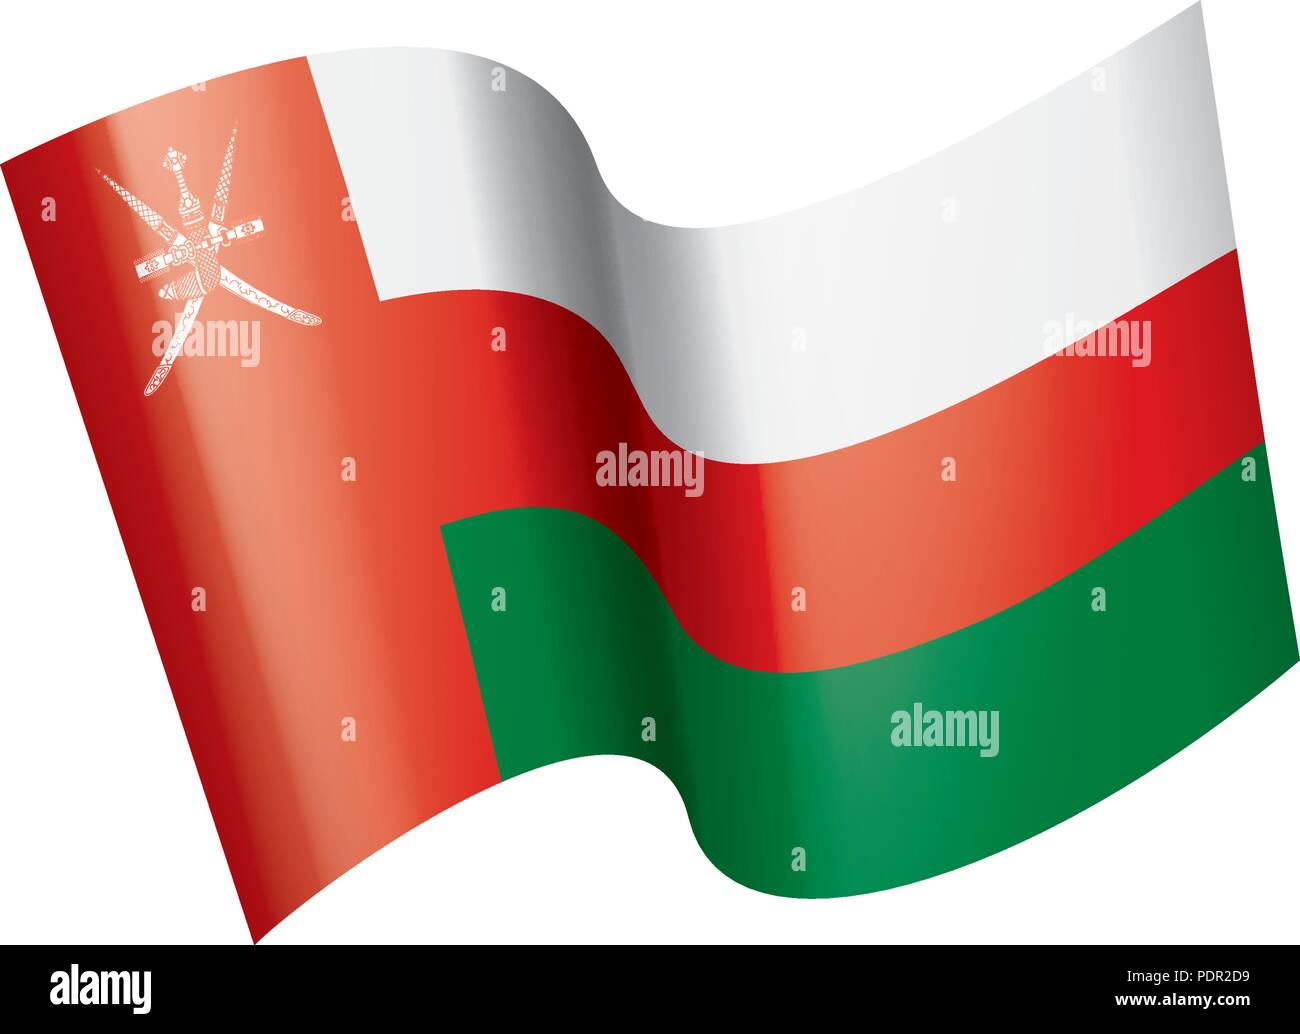 Oman flag, vector illustration on a white background - Stock Image